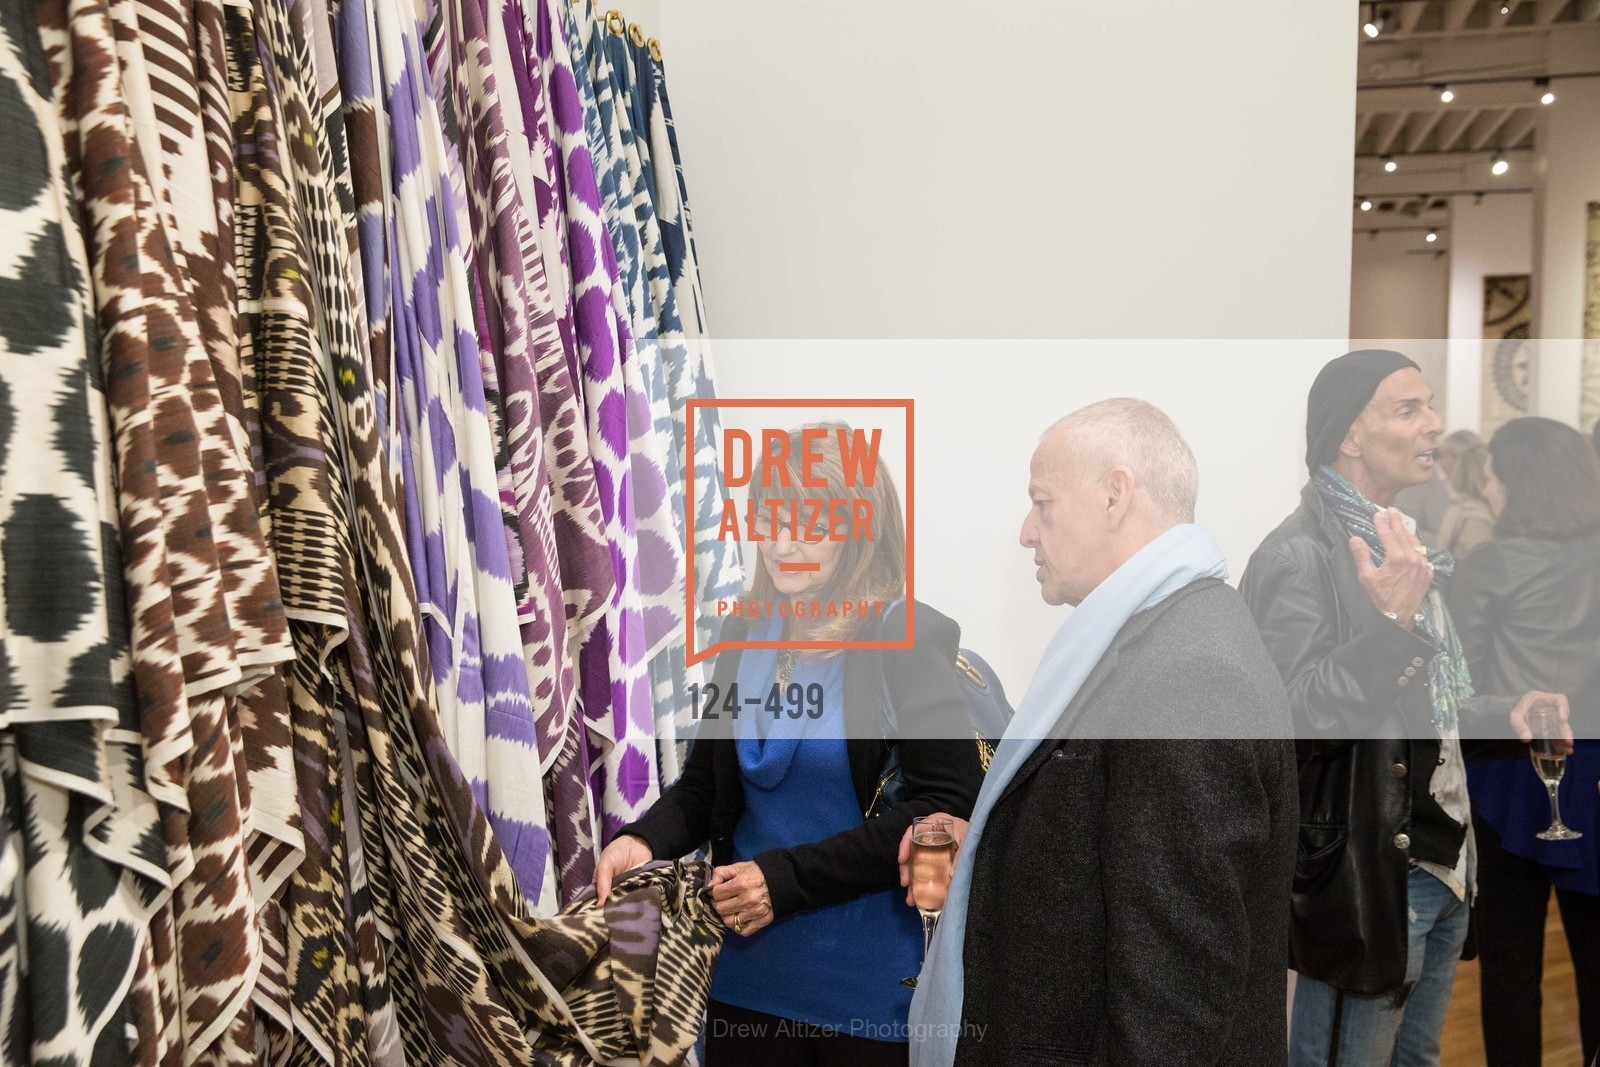 Extras, MADELINE WEINRIB Opens New San Francisco Showroom, April 3rd, 2014, Photo,Drew Altizer, Drew Altizer Photography, full-service agency, private events, San Francisco photographer, photographer california